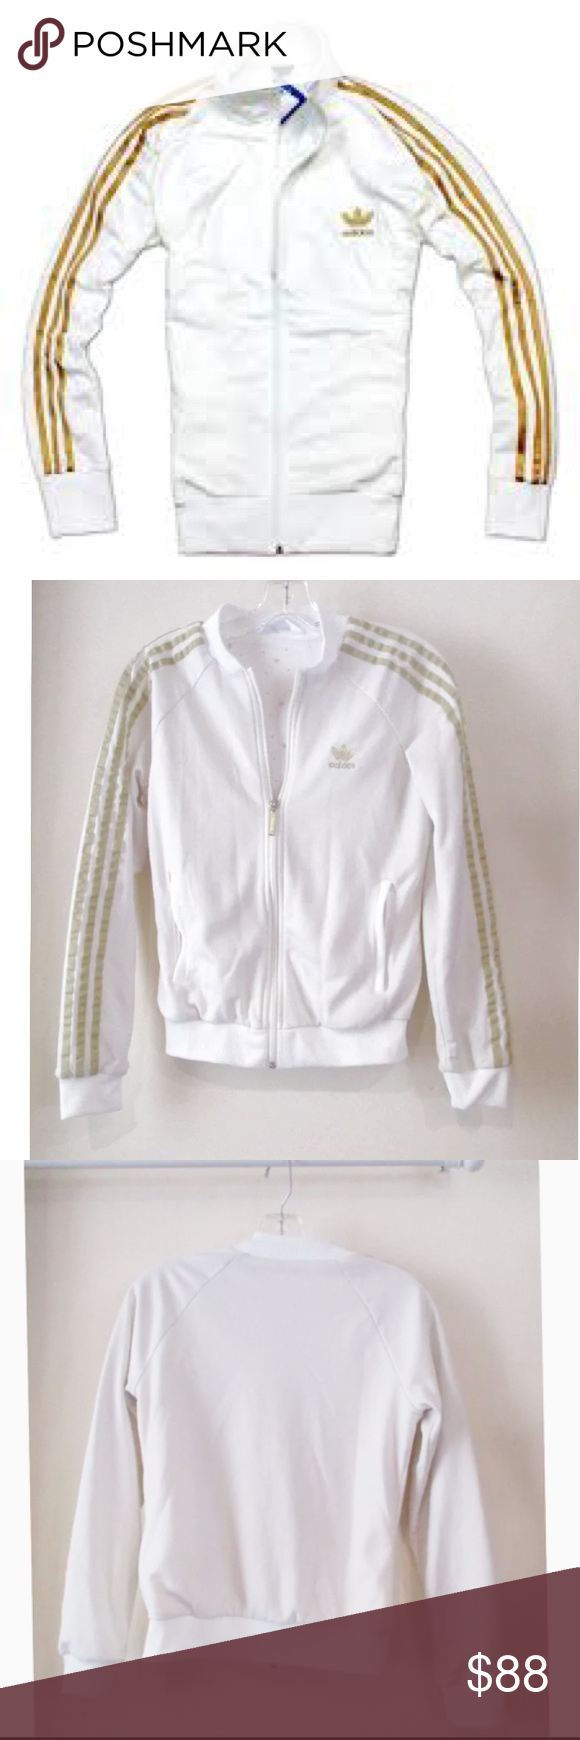 e79e868e71ed ADIDAS ORIGINALS White + Gold SUPERSTAR JACKET Features  - Adidas Gold  TREFOIL Embroidered Logo - Signature 3 Stripes on Arms - Gold Zipper ...